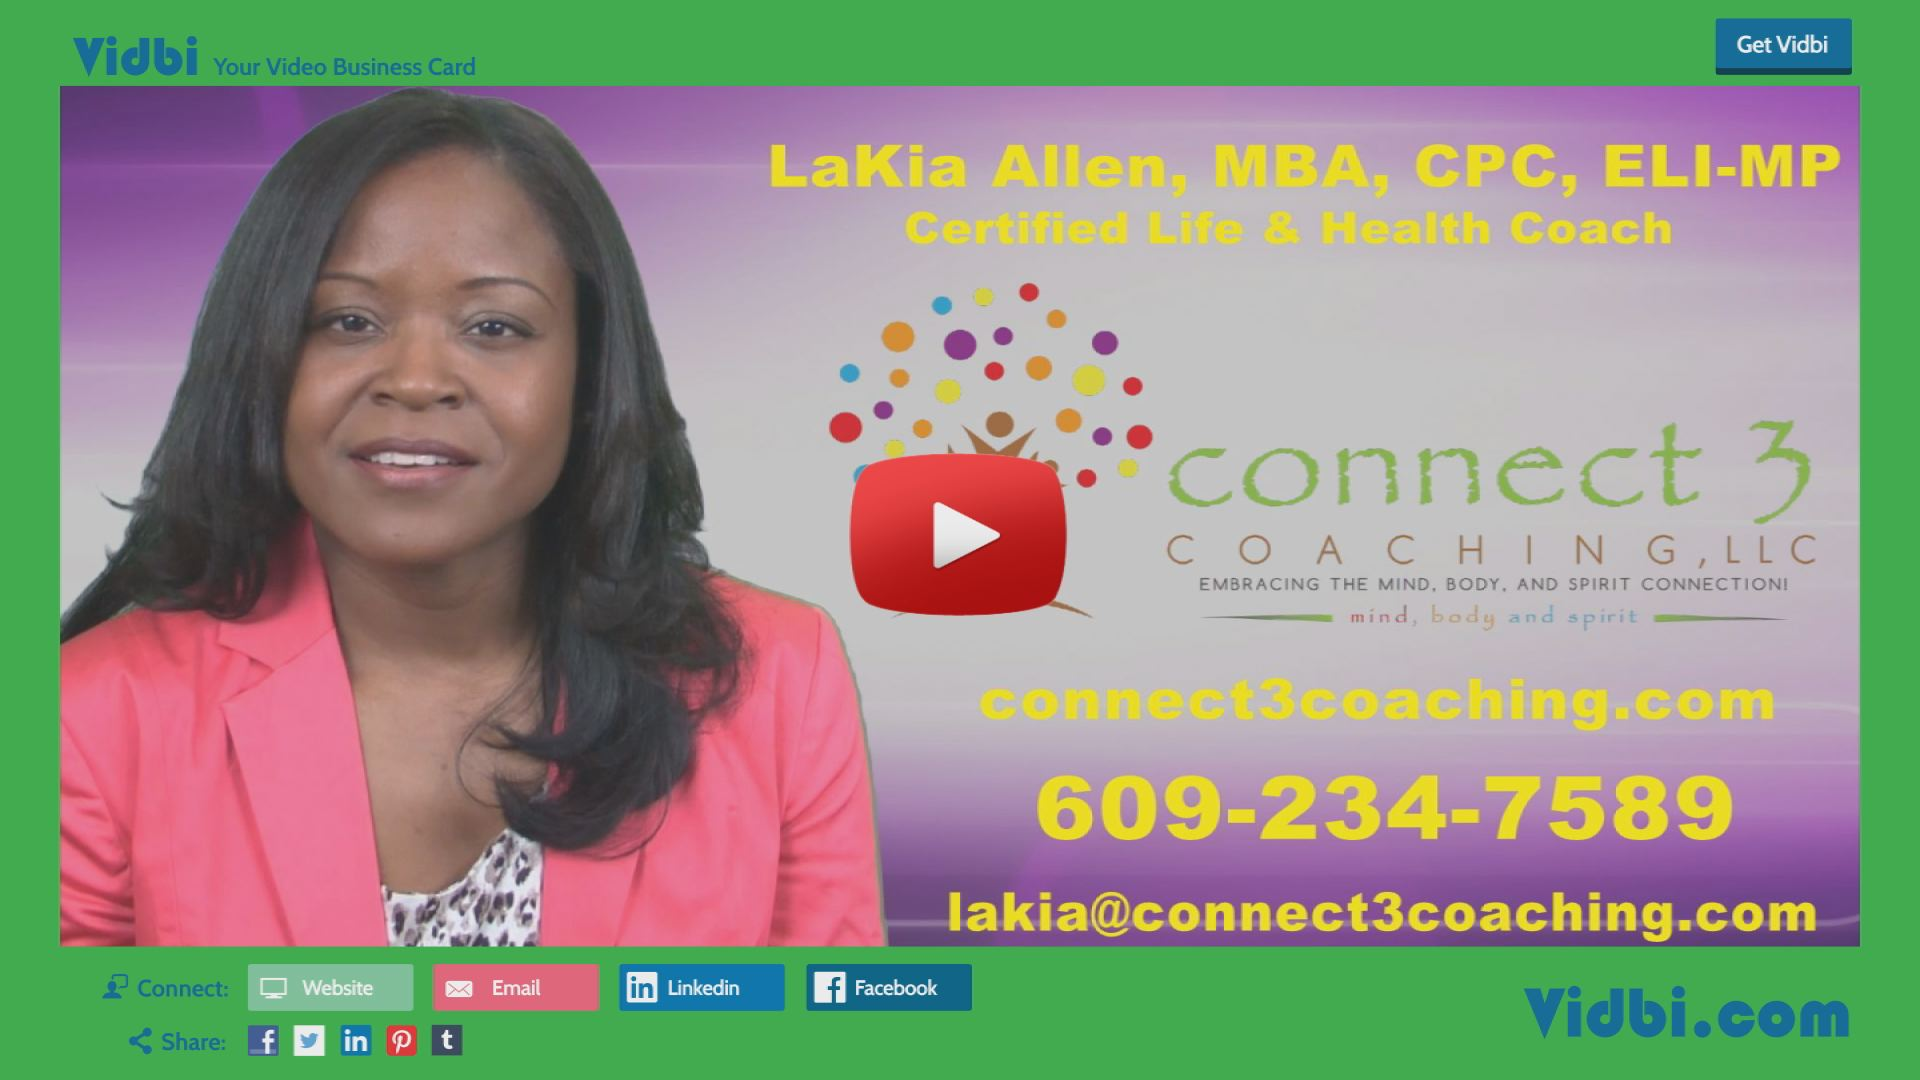 LaKia Allen - Connect 3 Coaching LLC Vidbi